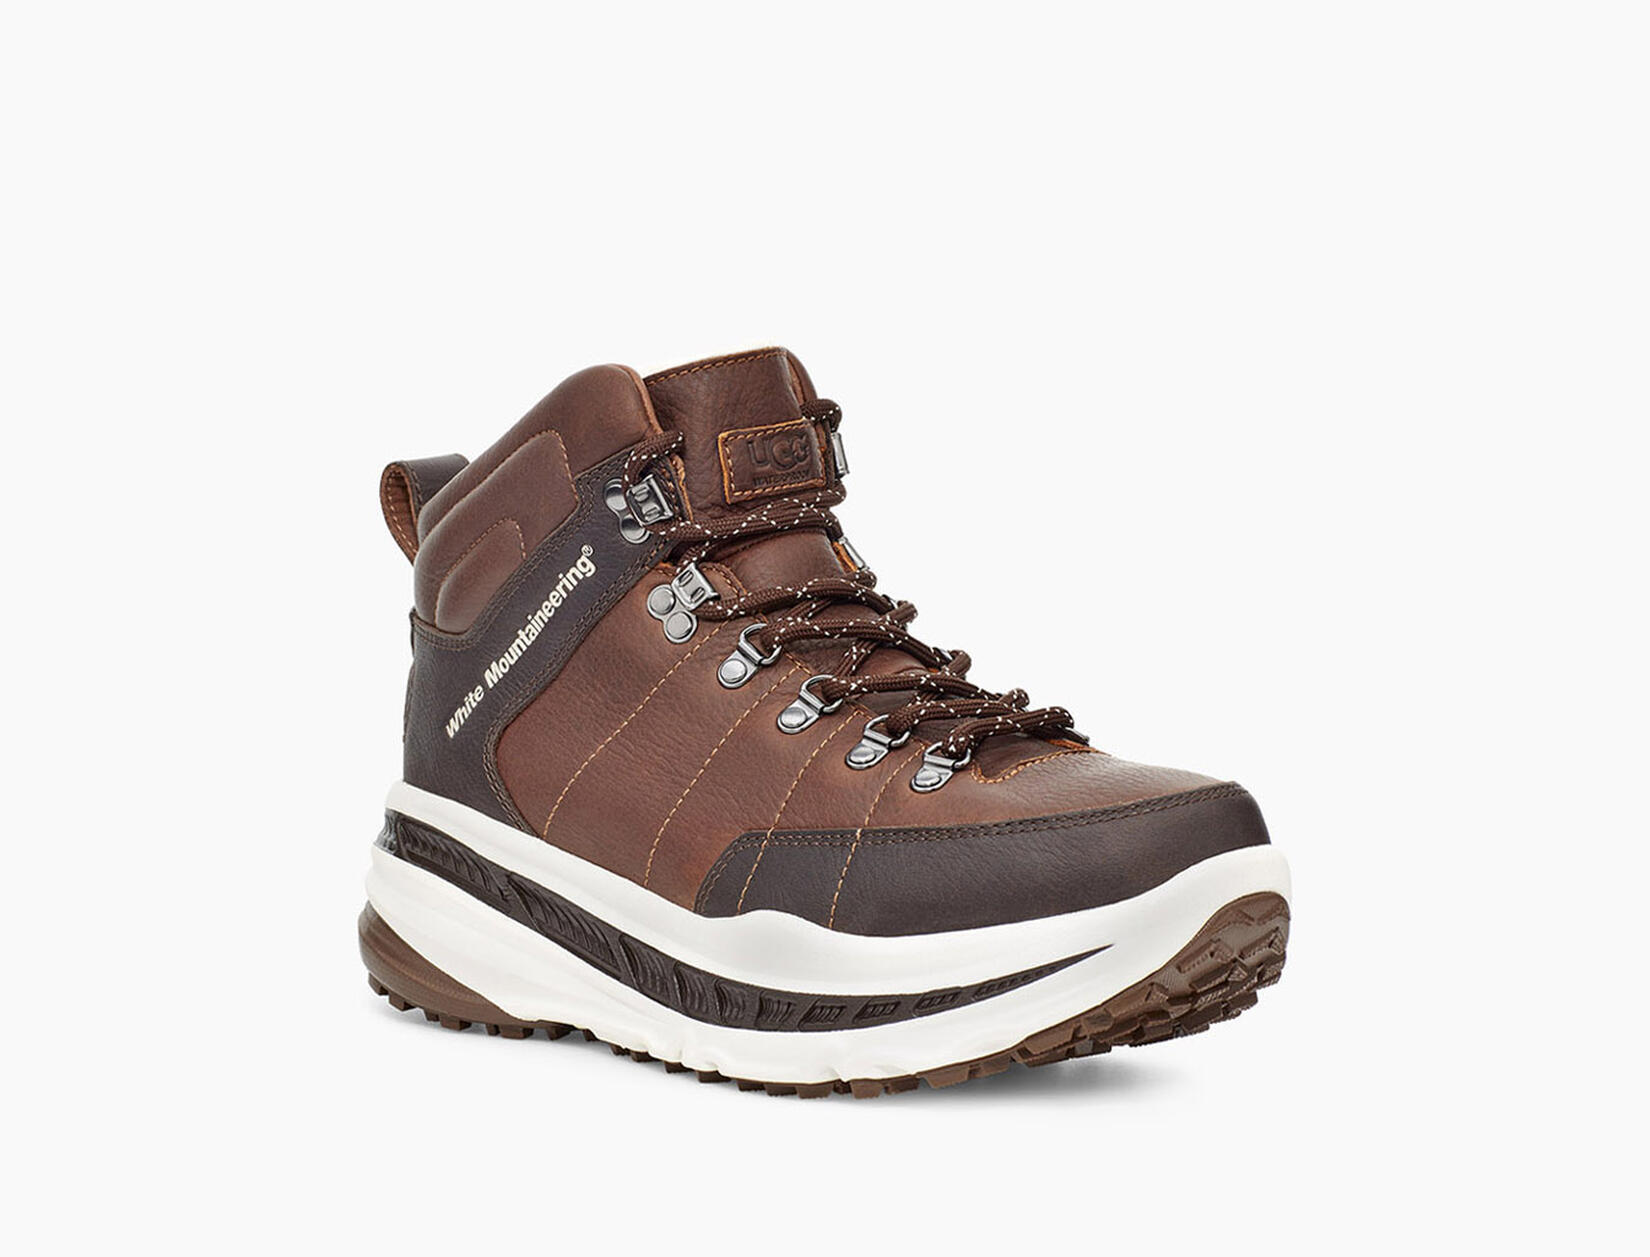 White Mountaineering 805 Hiker Boot